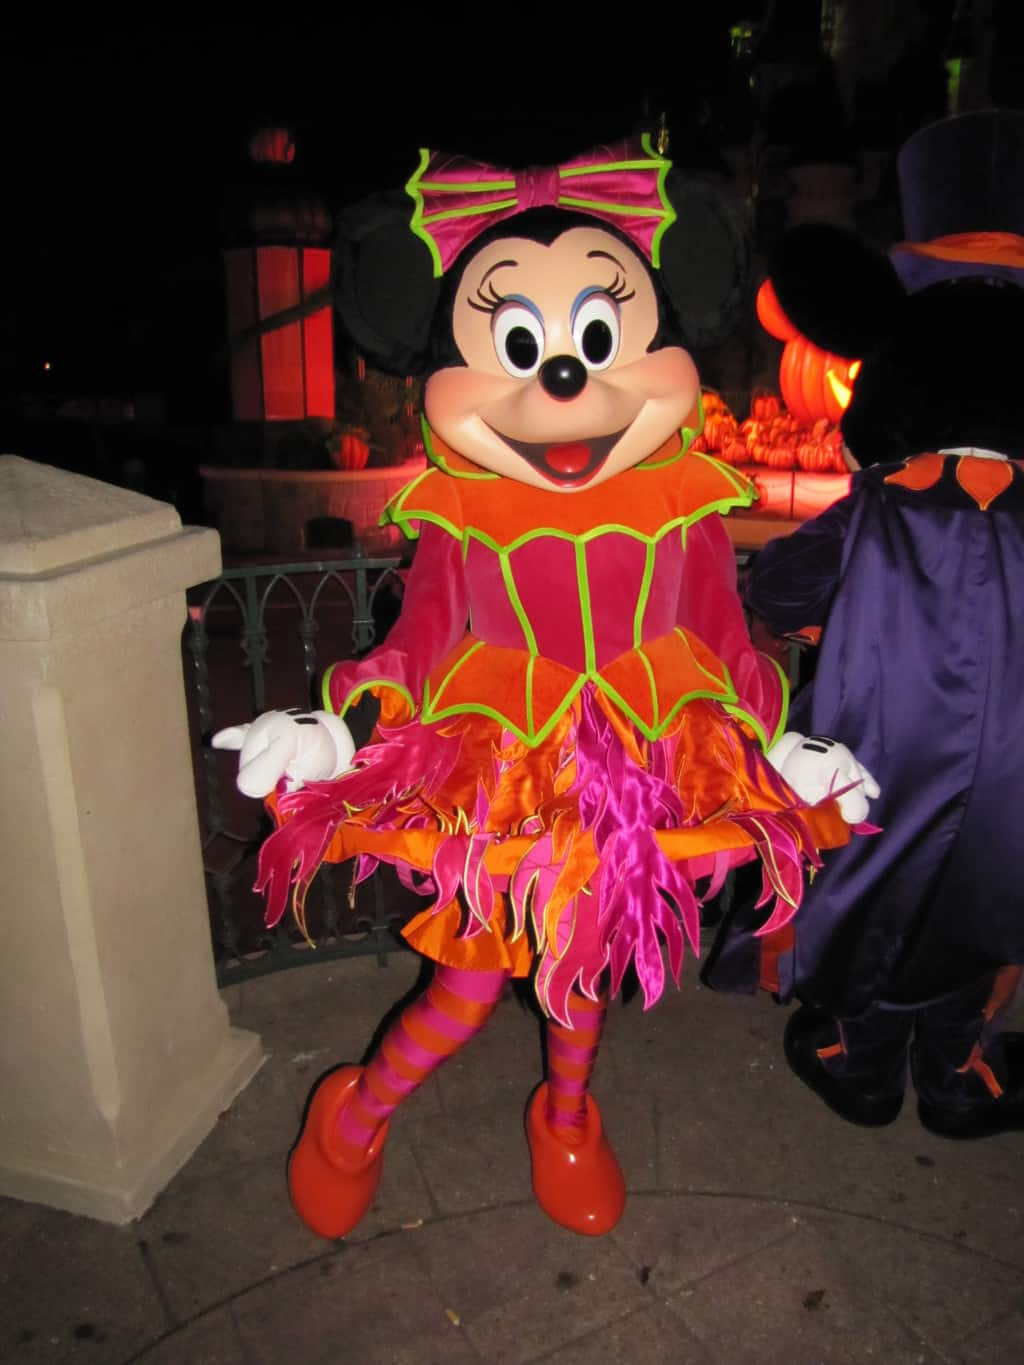 Minnie wore this outfit at the Halloween Show during Halloween Season 2011 & 2012 and the 2012 Halloween Party.